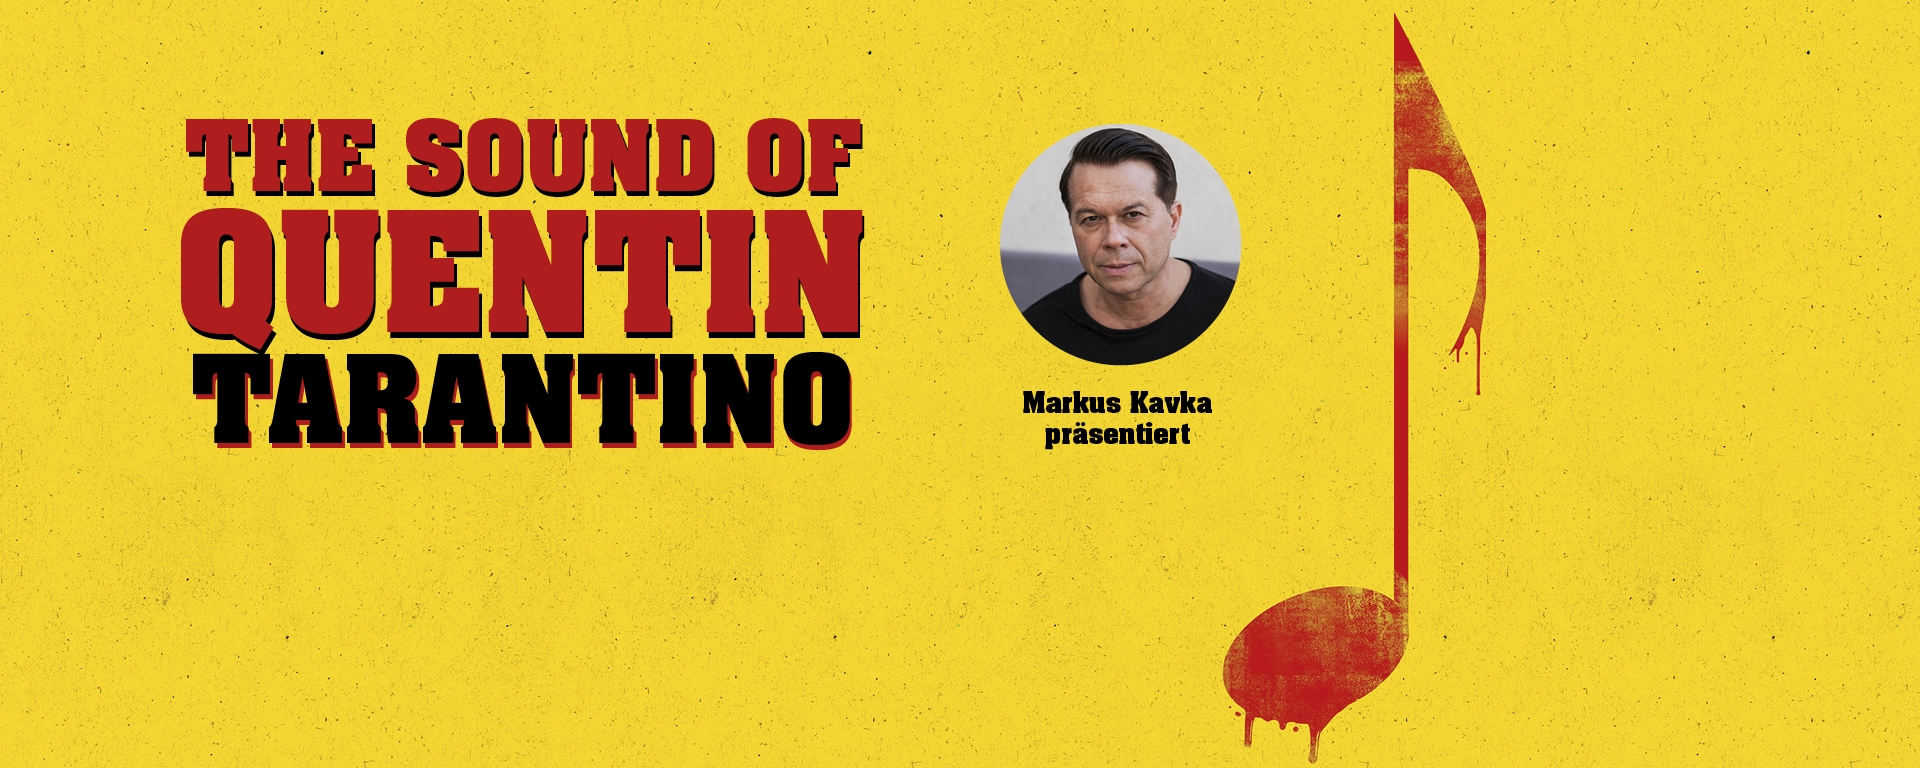 The Sound of Quentin Tarantino